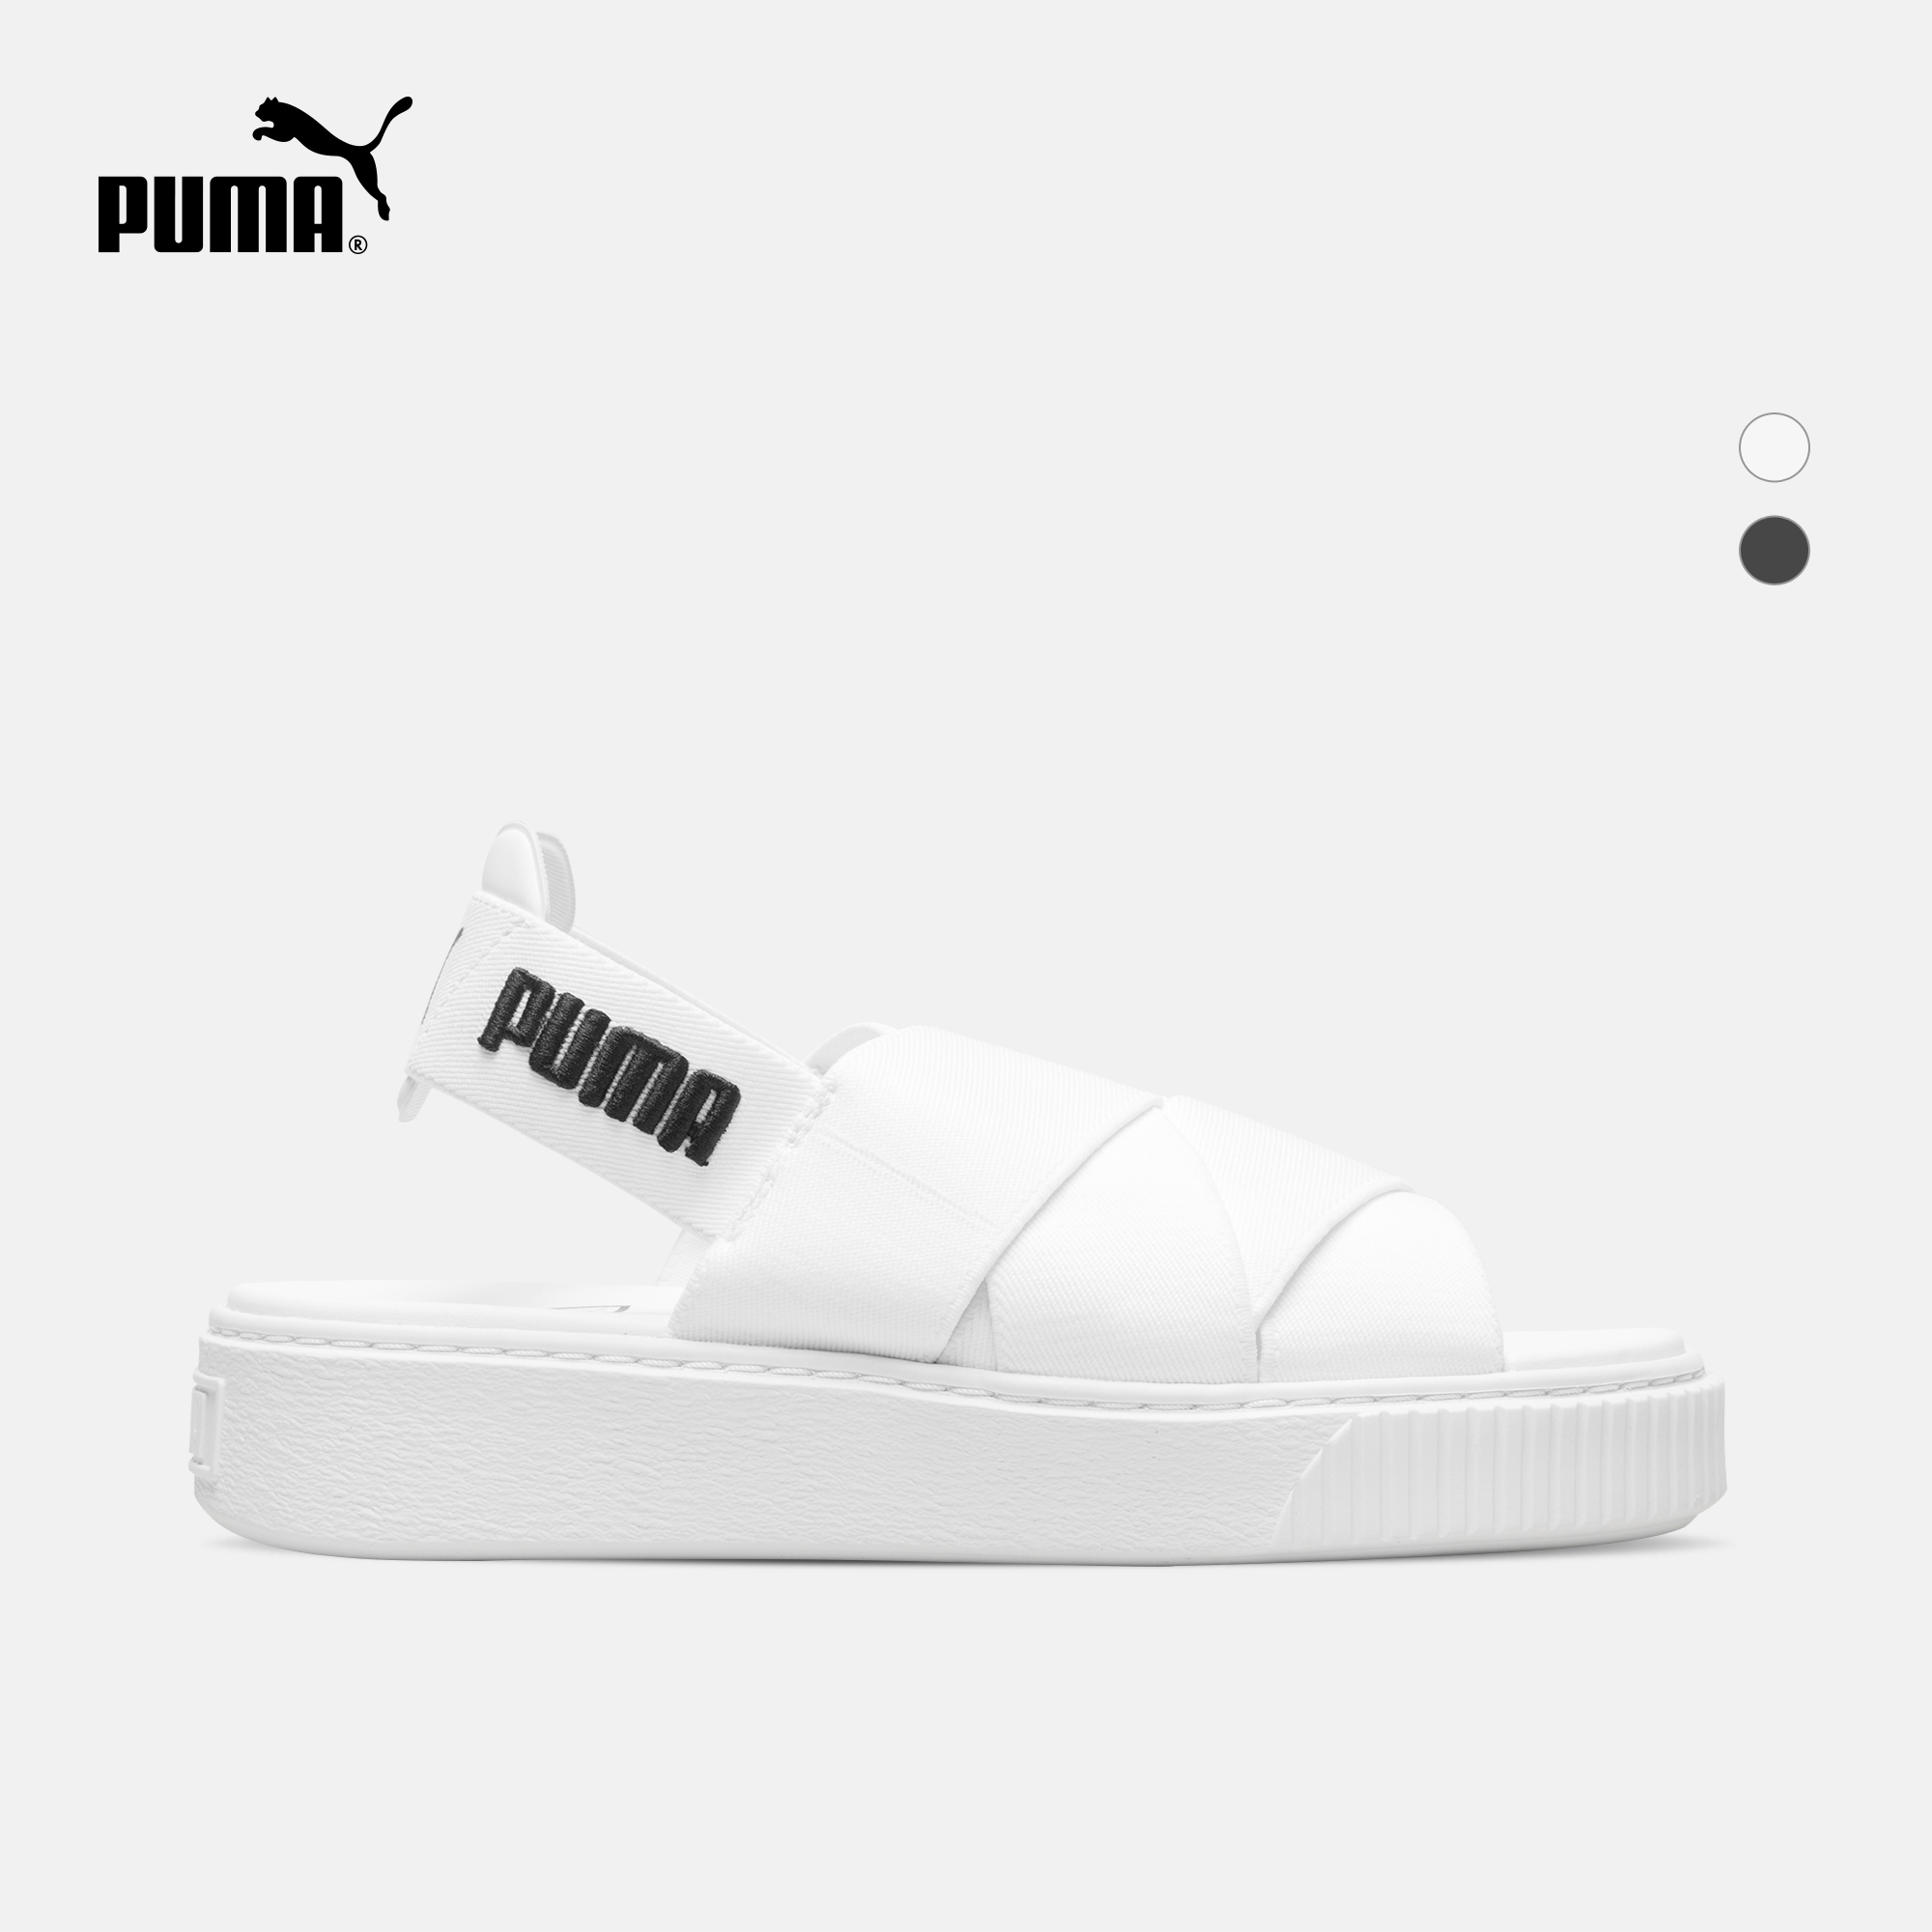 014166b32b All Categories · Men's Clothing · Women's Clothing · Shoes ...